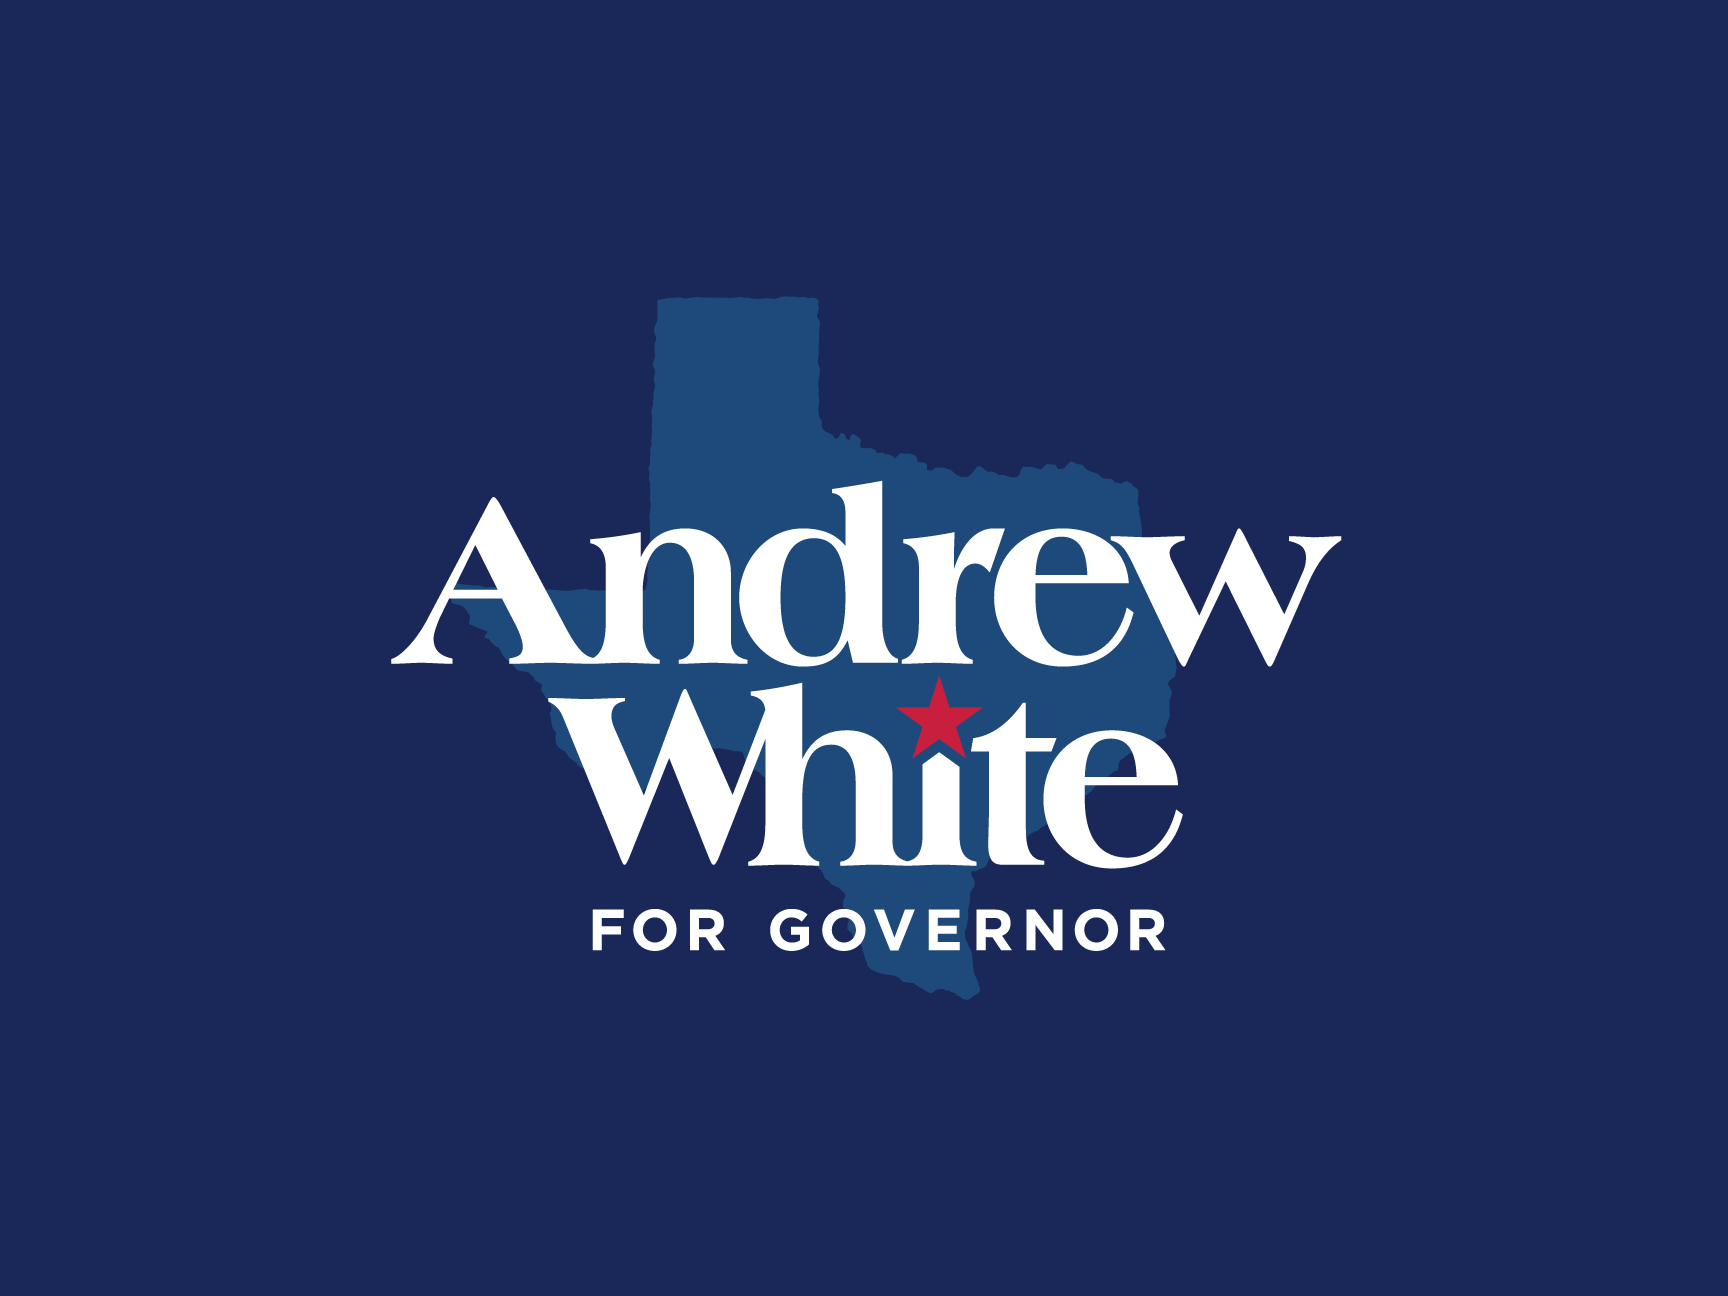 AndrewWhite_Announcement.png